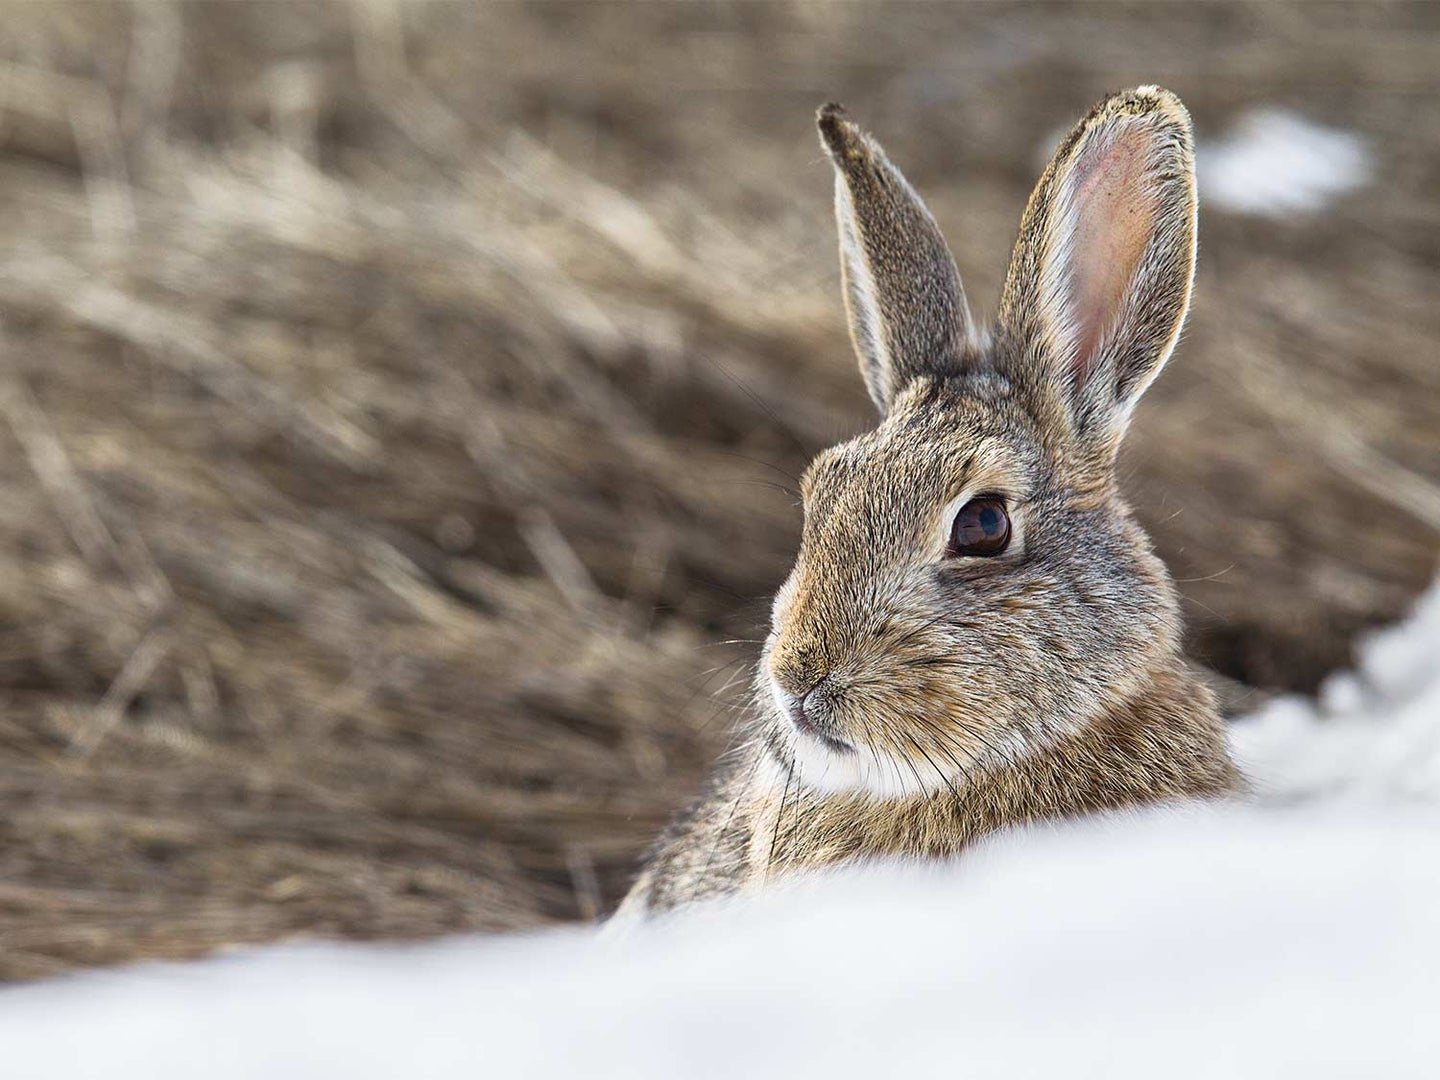 A small cottontail rabbit in the snow.